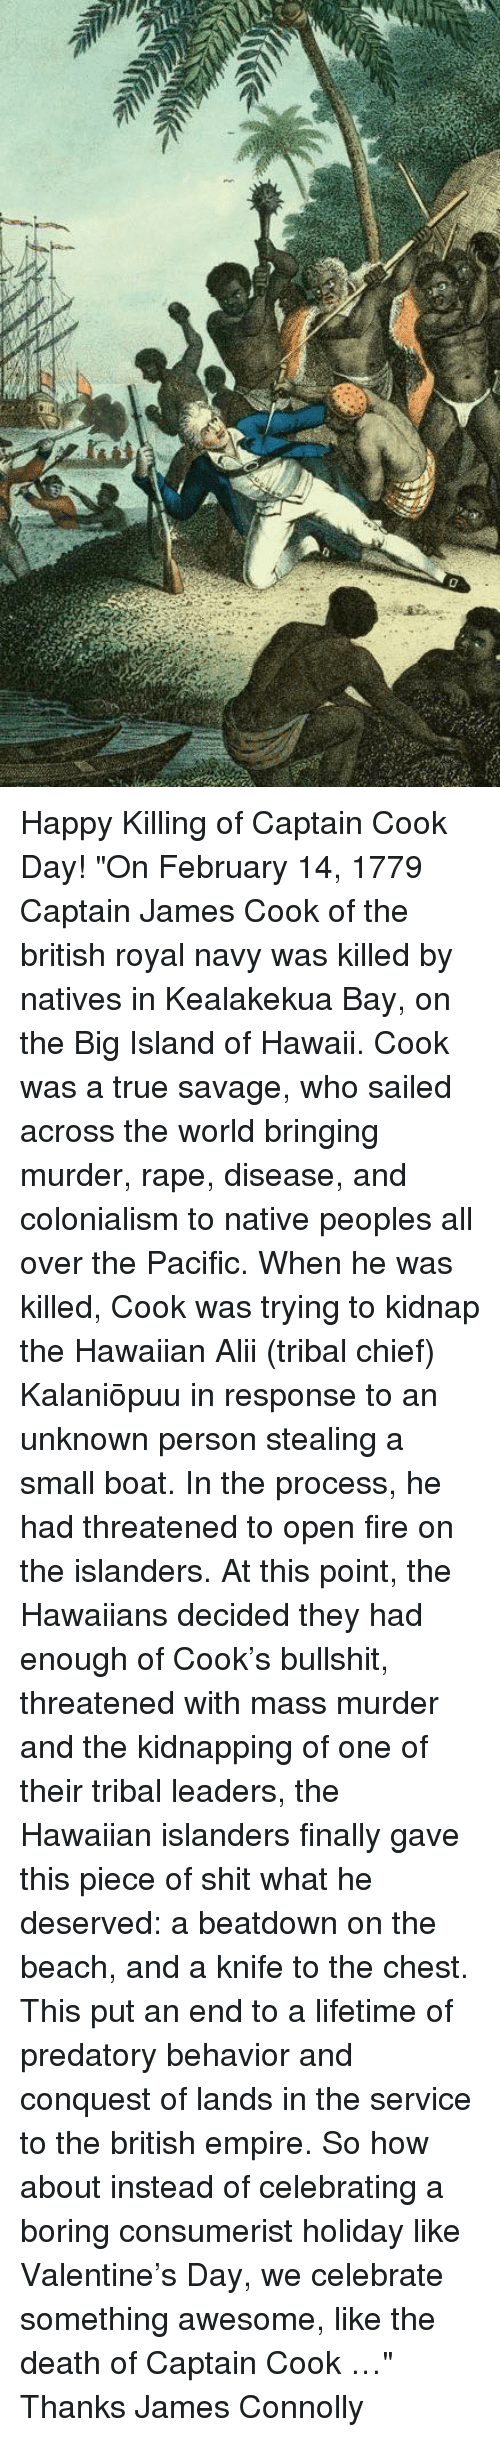 """Memes, Hawaiian, and British Empire: Happy Killing of Captain Cook Day!  """"On February 14, 1779 Captain James Cook of the british royal navy was killed by natives in Kealakekua Bay, on the Big Island of Hawaii. Cook was a true savage, who sailed across the world bringing murder, rape, disease, and colonialism to native peoples all over the Pacific.  When he was killed, Cook was trying to kidnap the Hawaiian Aliʻi (tribal chief) Kalaniʻōpuʻu in response to an unknown person stealing a small boat. In the process, he had threatened to open fire on the islanders. At this point, the Hawaiians decided they had enough of Cook's bullshit, threatened with mass murder and the kidnapping of one of their tribal leaders, the Hawaiian islanders finally gave this piece of shit what he deserved: a beatdown on the beach, and a knife to the chest. This put an end to a lifetime of predatory behavior and conquest of lands in the service to the british empire.  So how about instead of celebrating a boring consumerist holiday like Valentine's Day, we celebrate something awesome, like the death of Captain Cook …""""  Thanks James Connolly"""